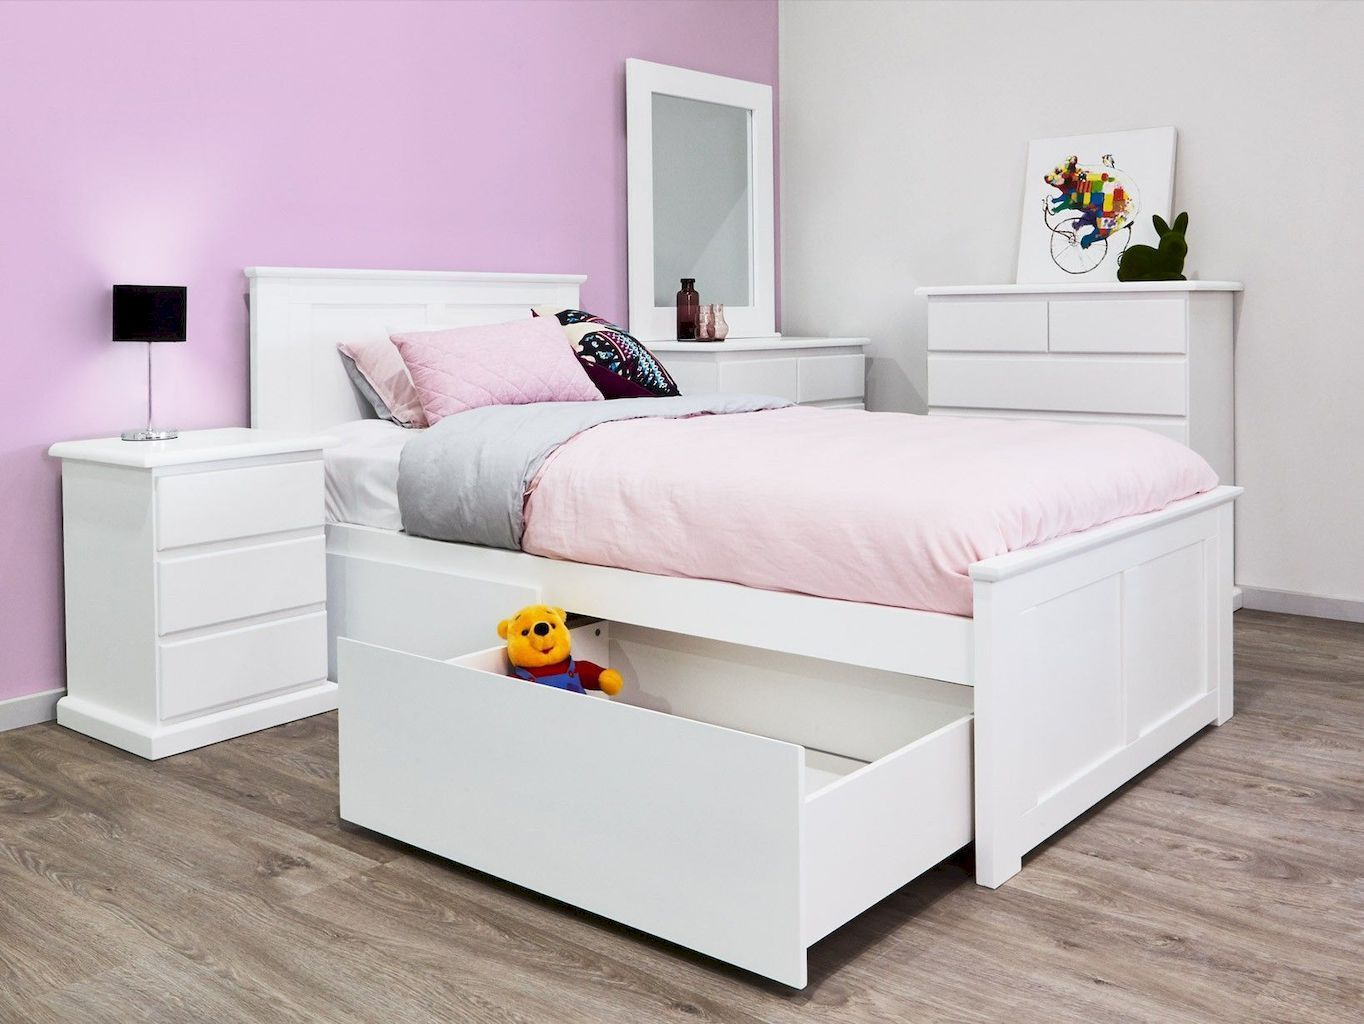 Cozy Single Bedroom Concept For Teens And Singles Part 17 Single